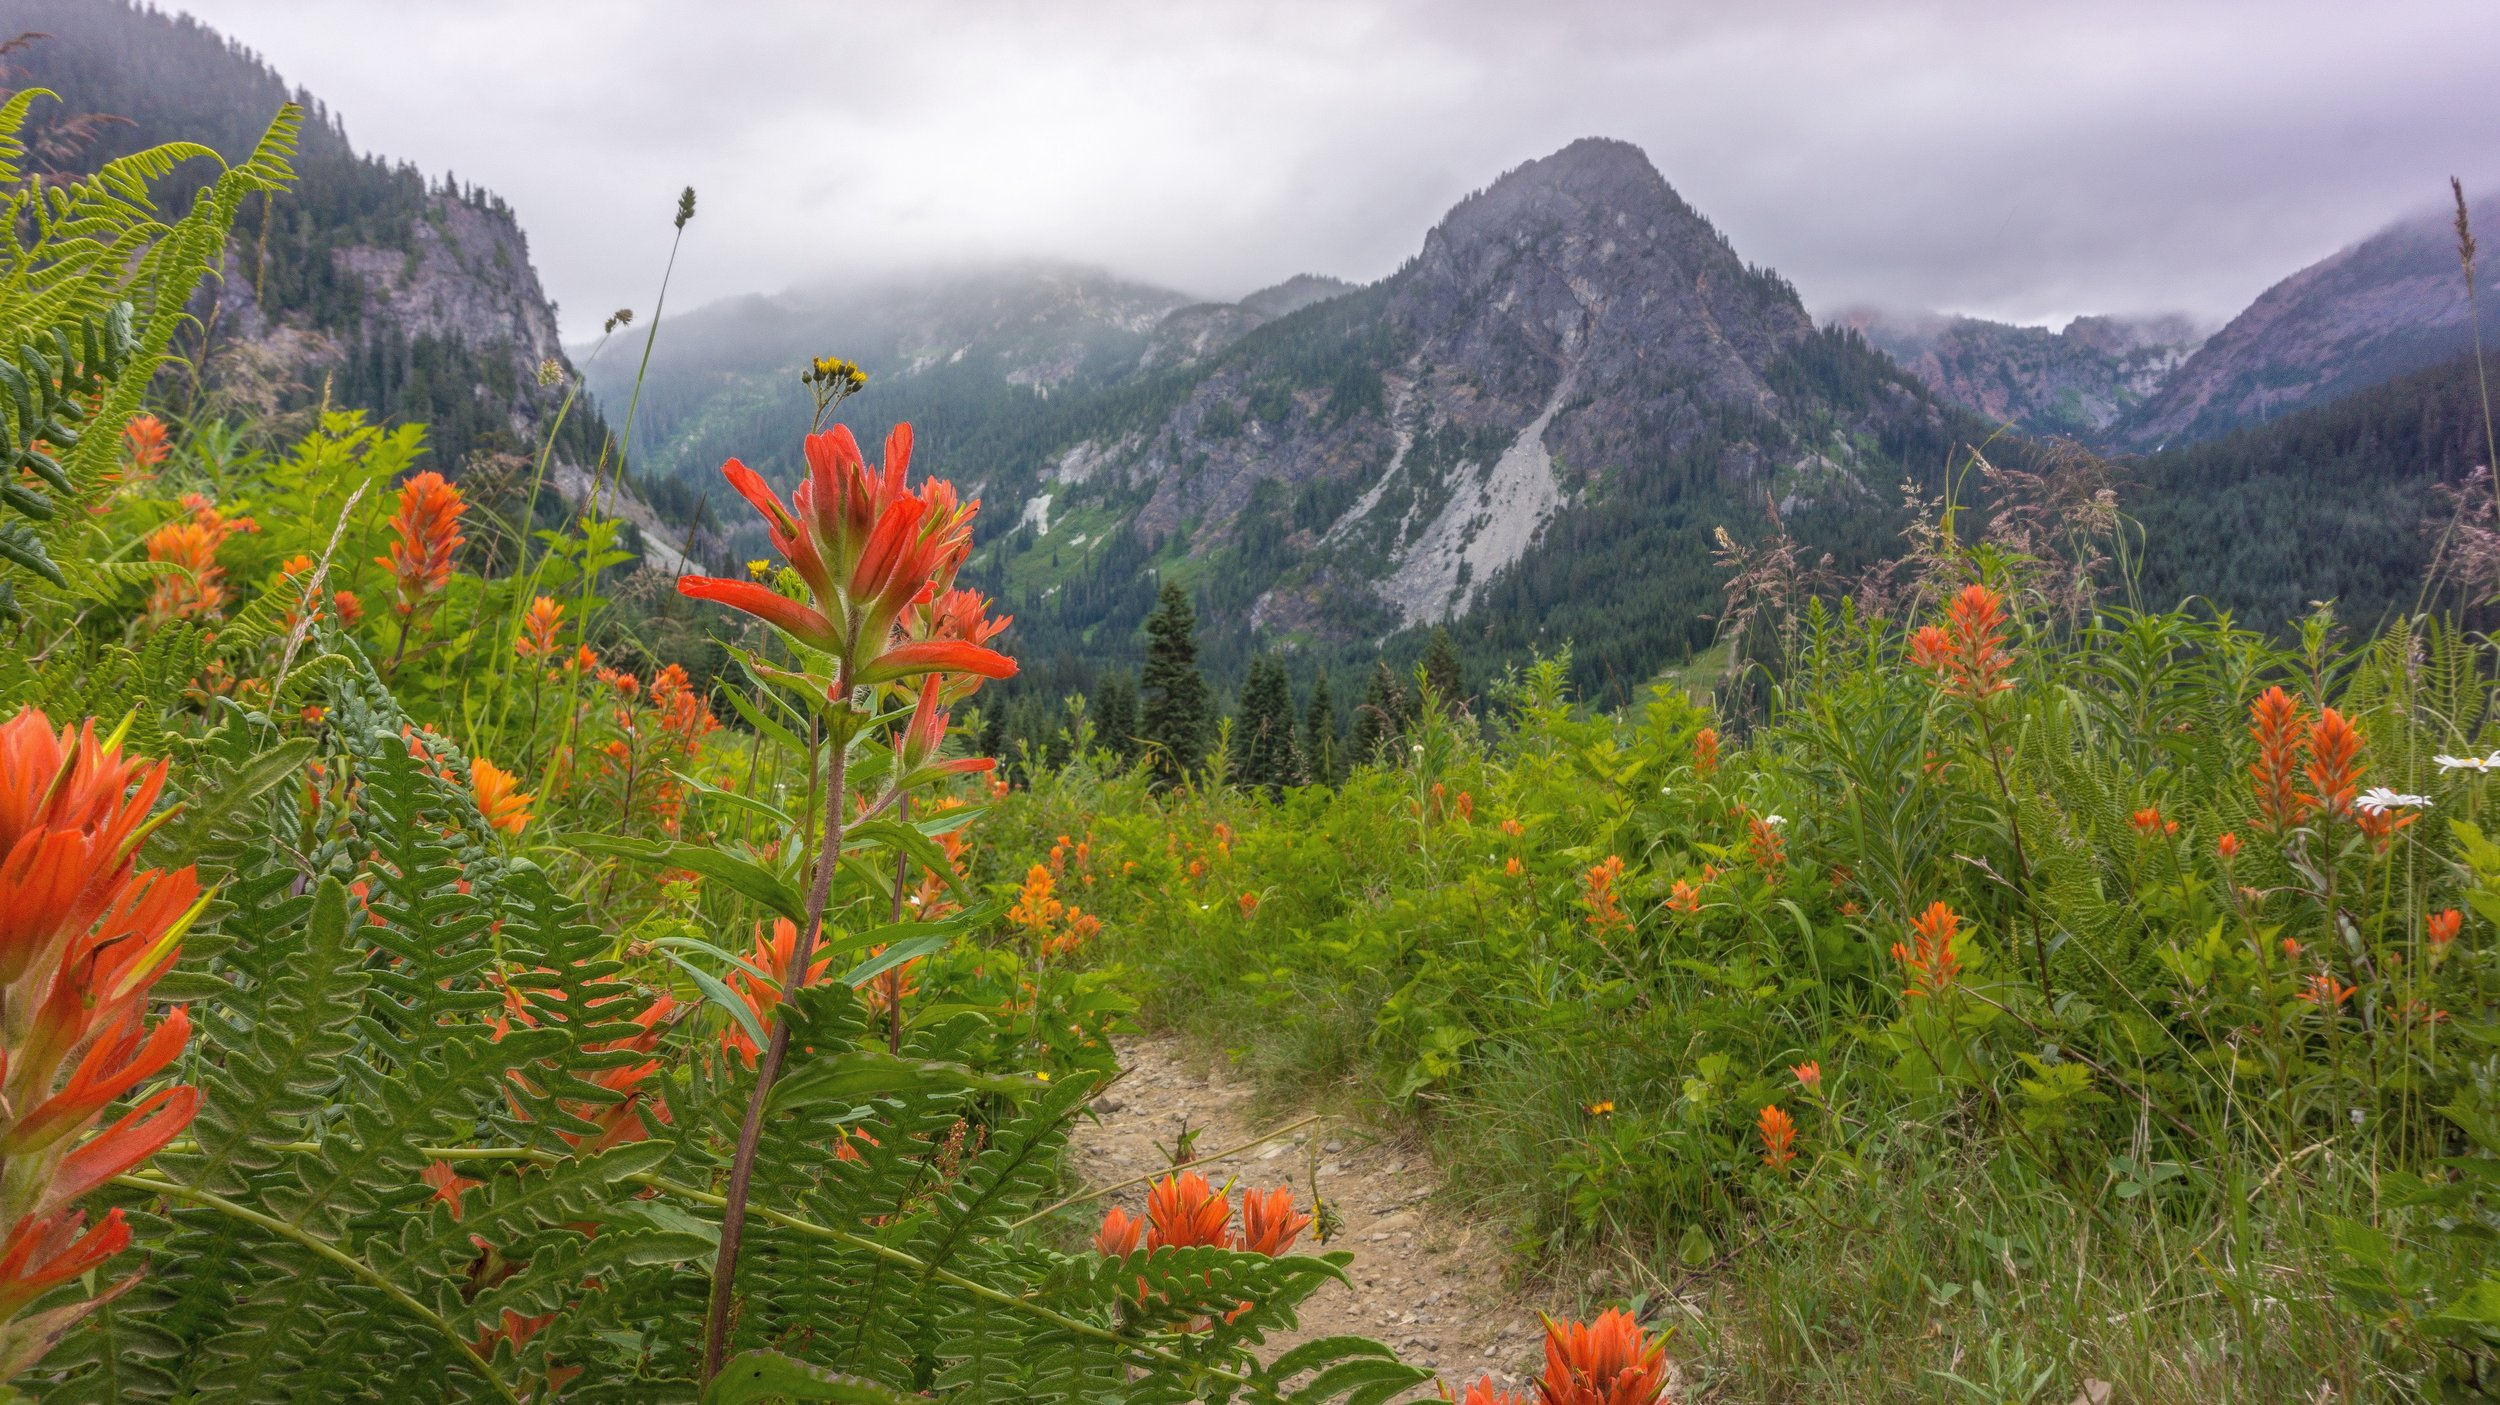 Smattering of red paintbrush with Guye Peak in the background.